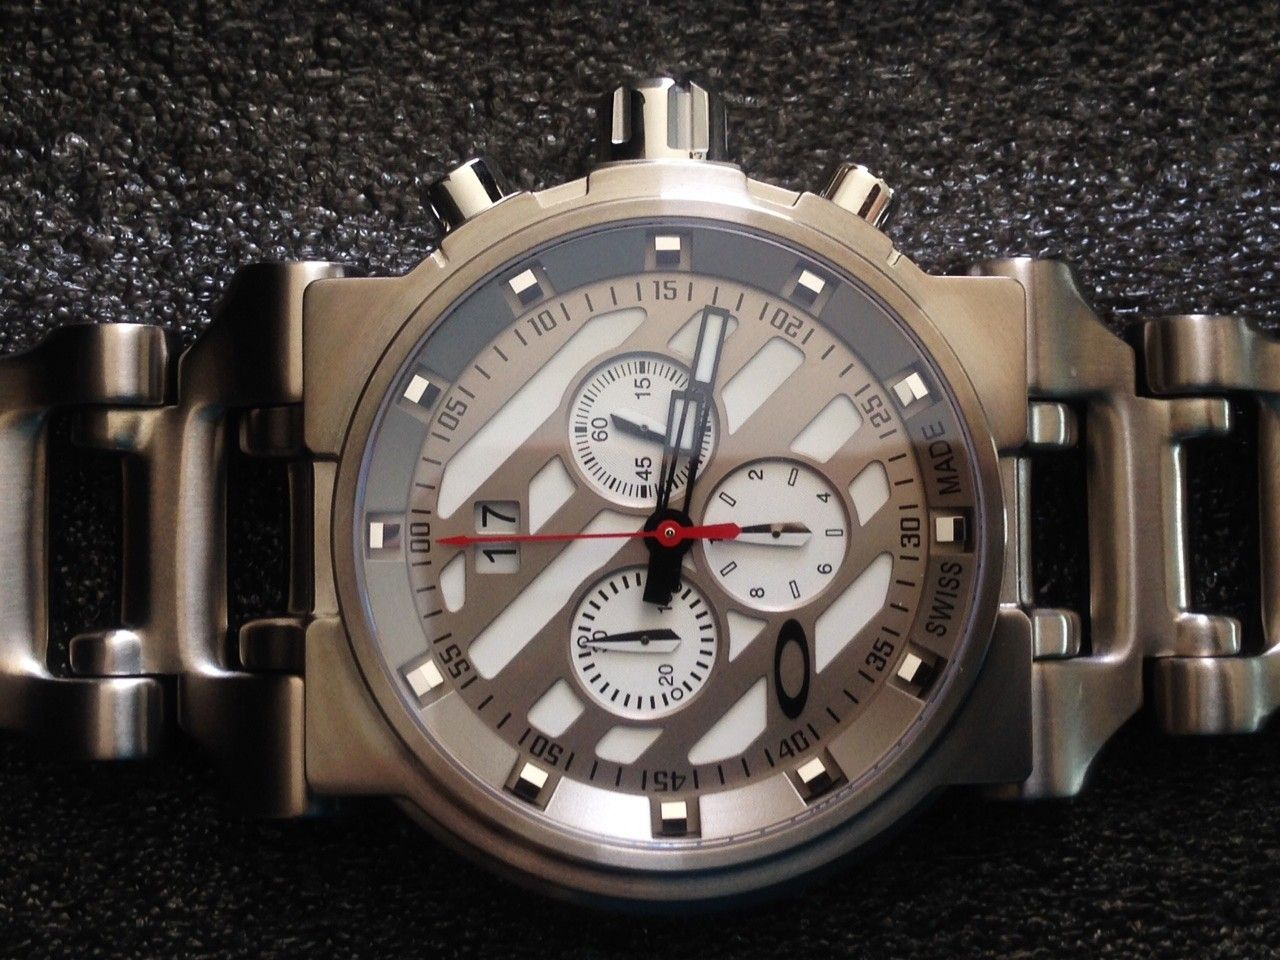 NEW IN BOX Hollow Point Titanium Watch White Dial 10-046 REDUCE PRICE 1,250 or Best Offer - 3.JPG